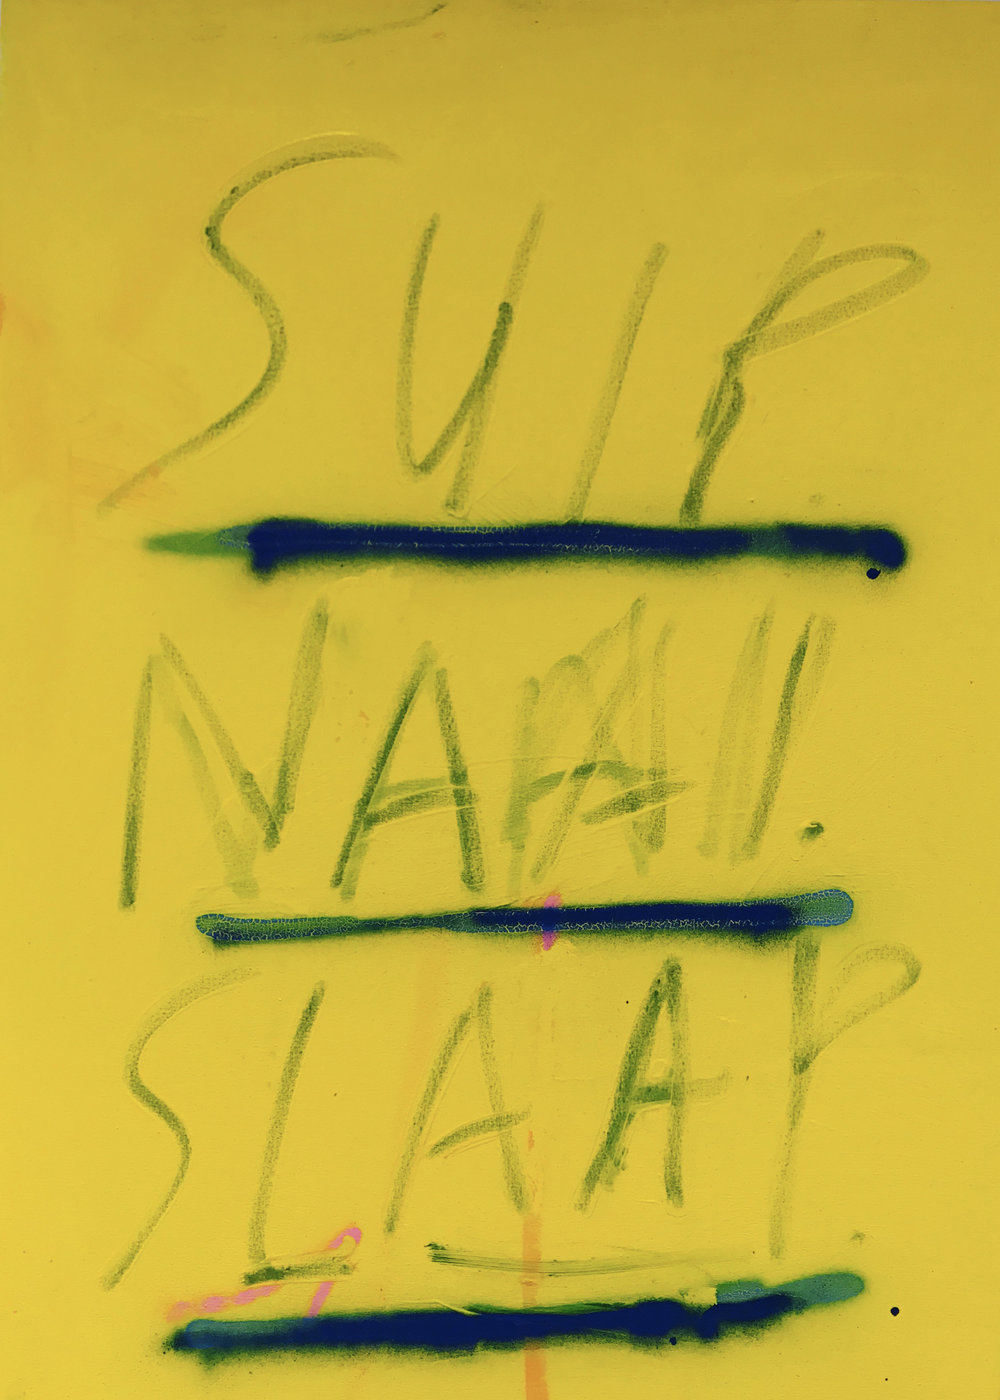 Suip, Naai, Slaap, (Drink, Sex, Sleep) acrylic, oil stick and spray paint on canvas, 44 x 32 in, 2017   Price on request